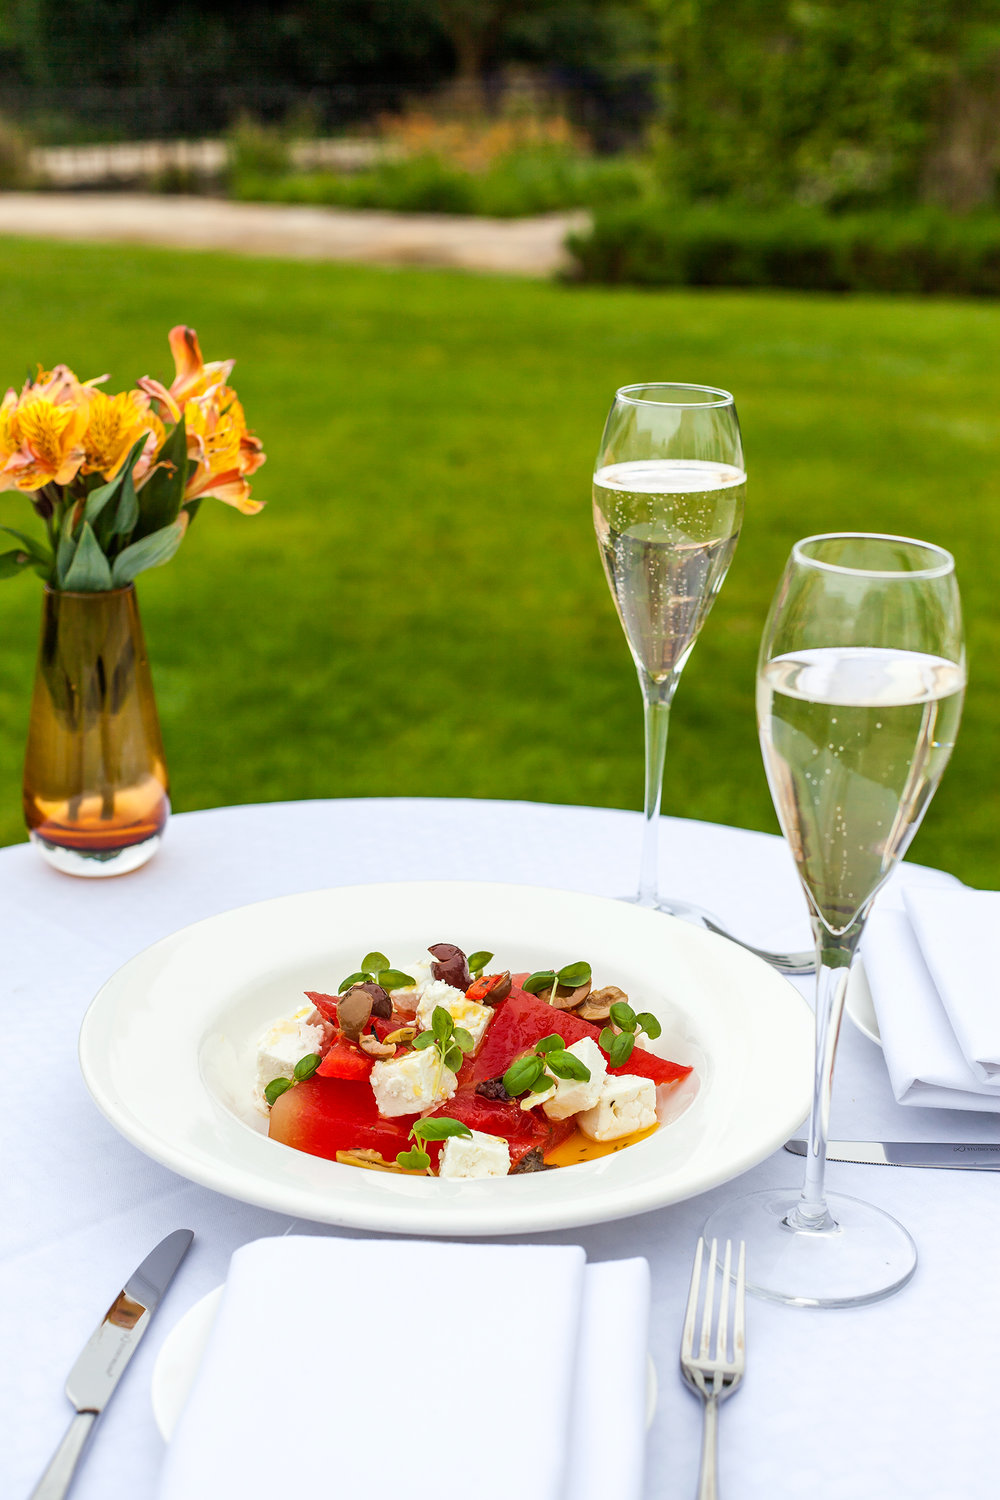 Watermelon Salad at Sopwell House  by Executive Head Chef Gopi Chandran.jpg